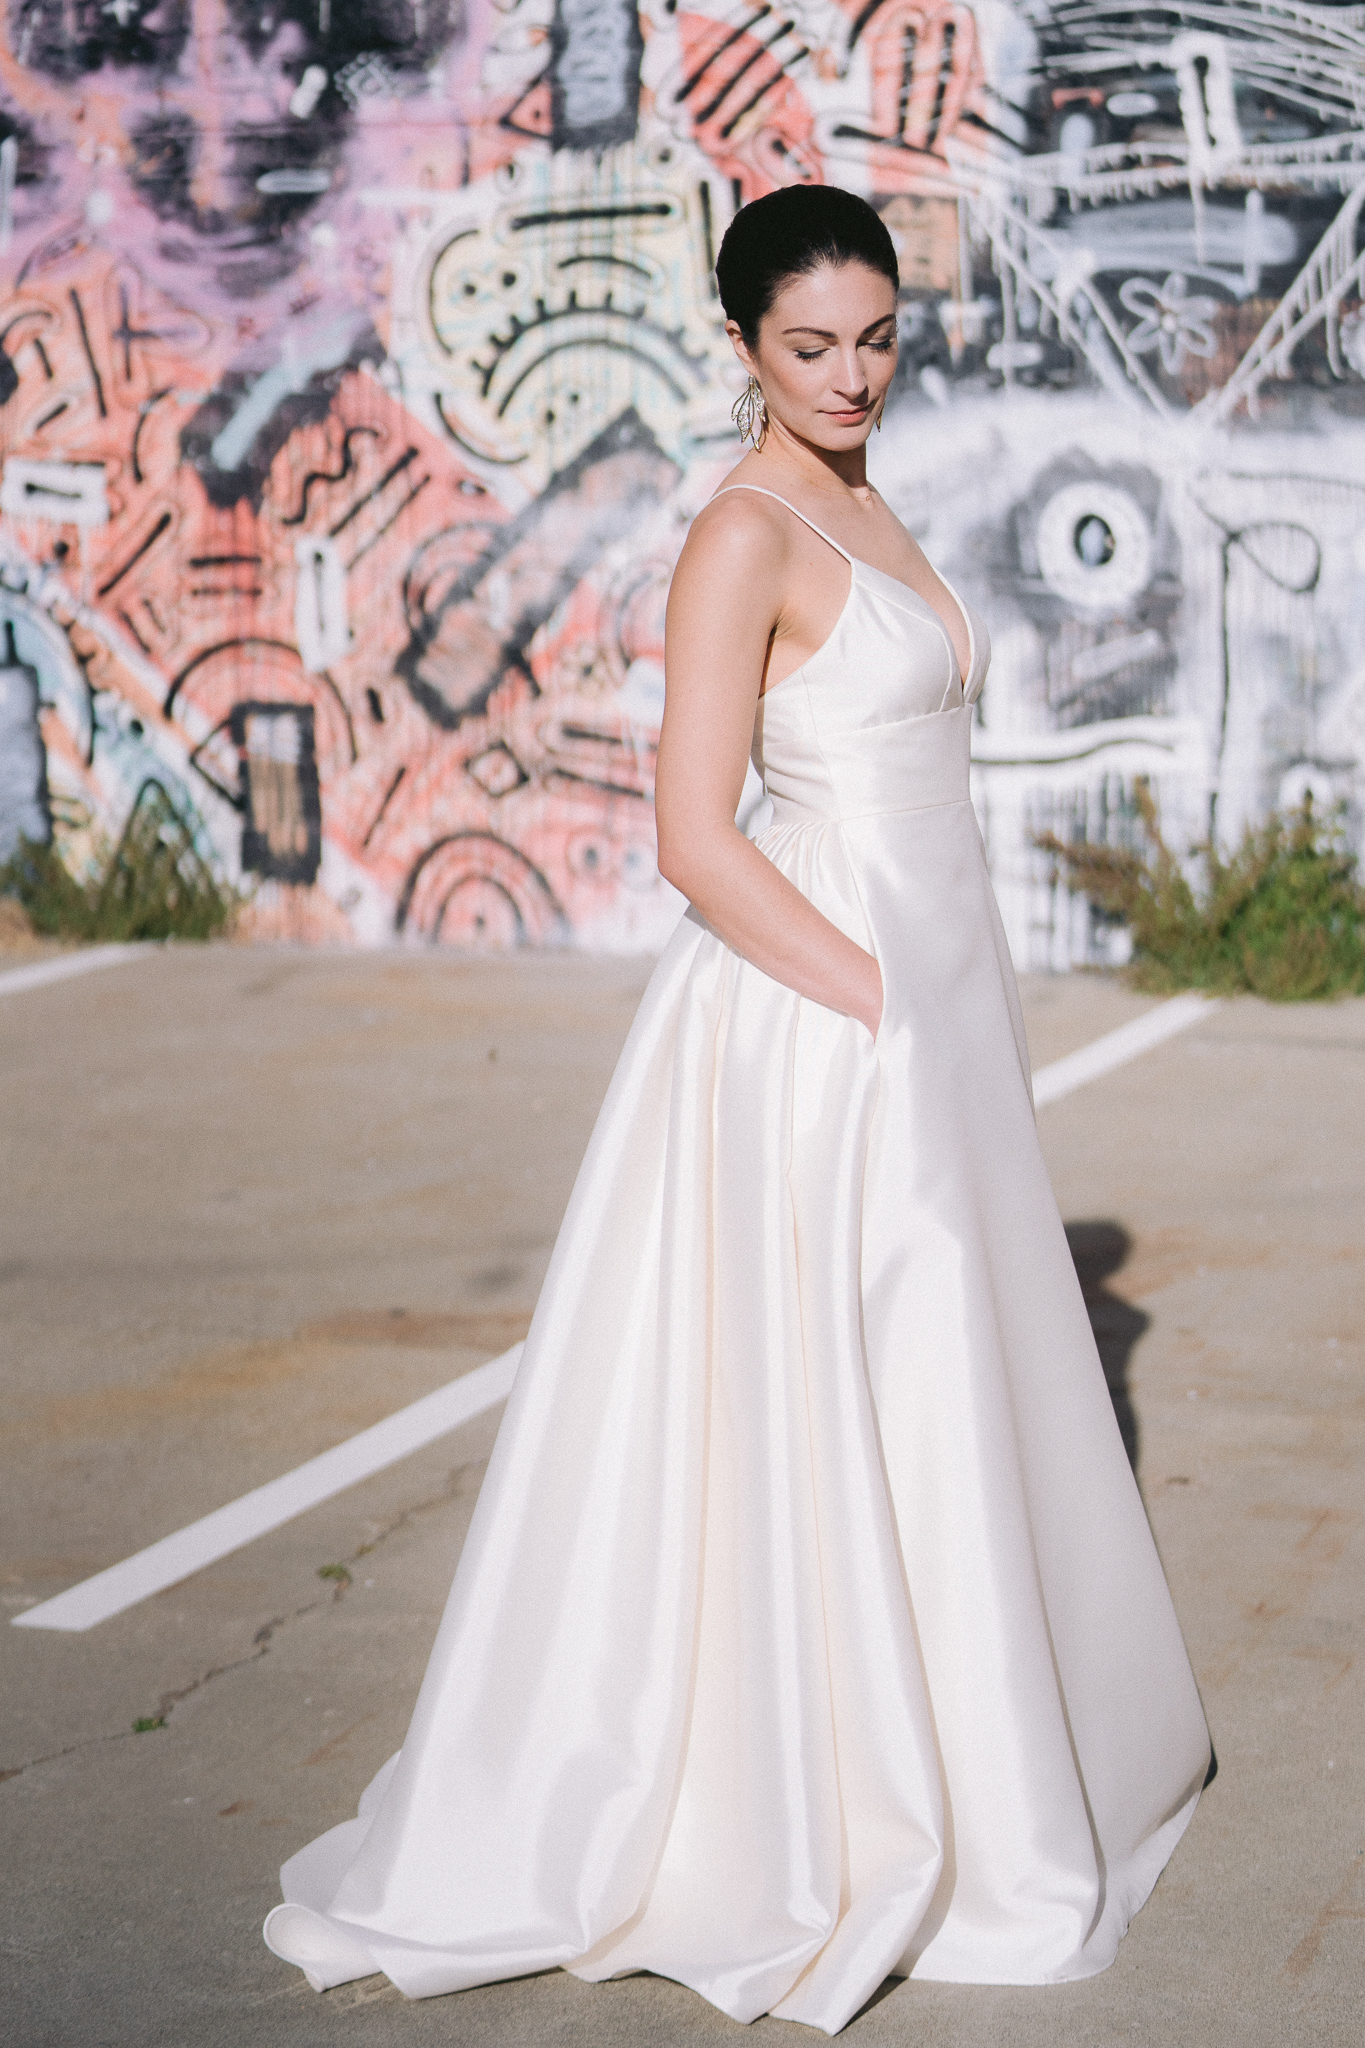 fine art portrait of bride in wedding dress with hands in pockets in front of graffiti wall in san francisco